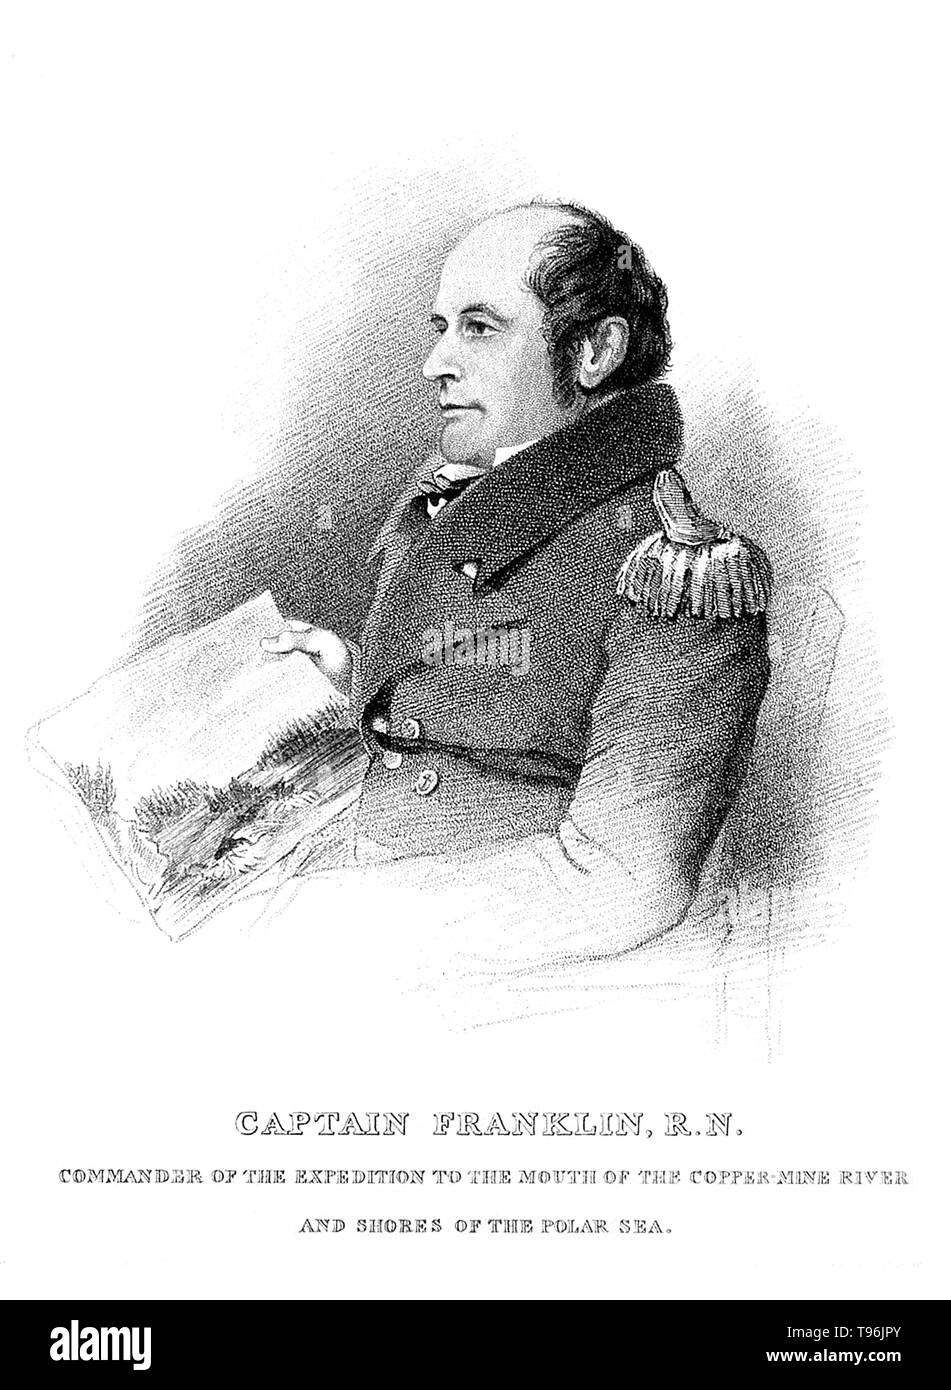 Rear-admiral Sir John Franklin (April 16, 1786 - June 11, 1847) was an English Royal Navy officer and explorer of the Arctic. In 1819, Franklin was chosen to lead an expedition overland from Hudson Bay to chart the north coast of Canada eastwards from the mouth of the Coppermine River. He lost 11 of the 20 men in his party. Most died of starvation, but there were also at least one murder and suggestions of cannibalism. The survivors were forced to eat lichen and even attempted to eat their own leather boots. In 1825, he left for his second Canadian and third Arctic expedition. The goal this ti - Stock Image